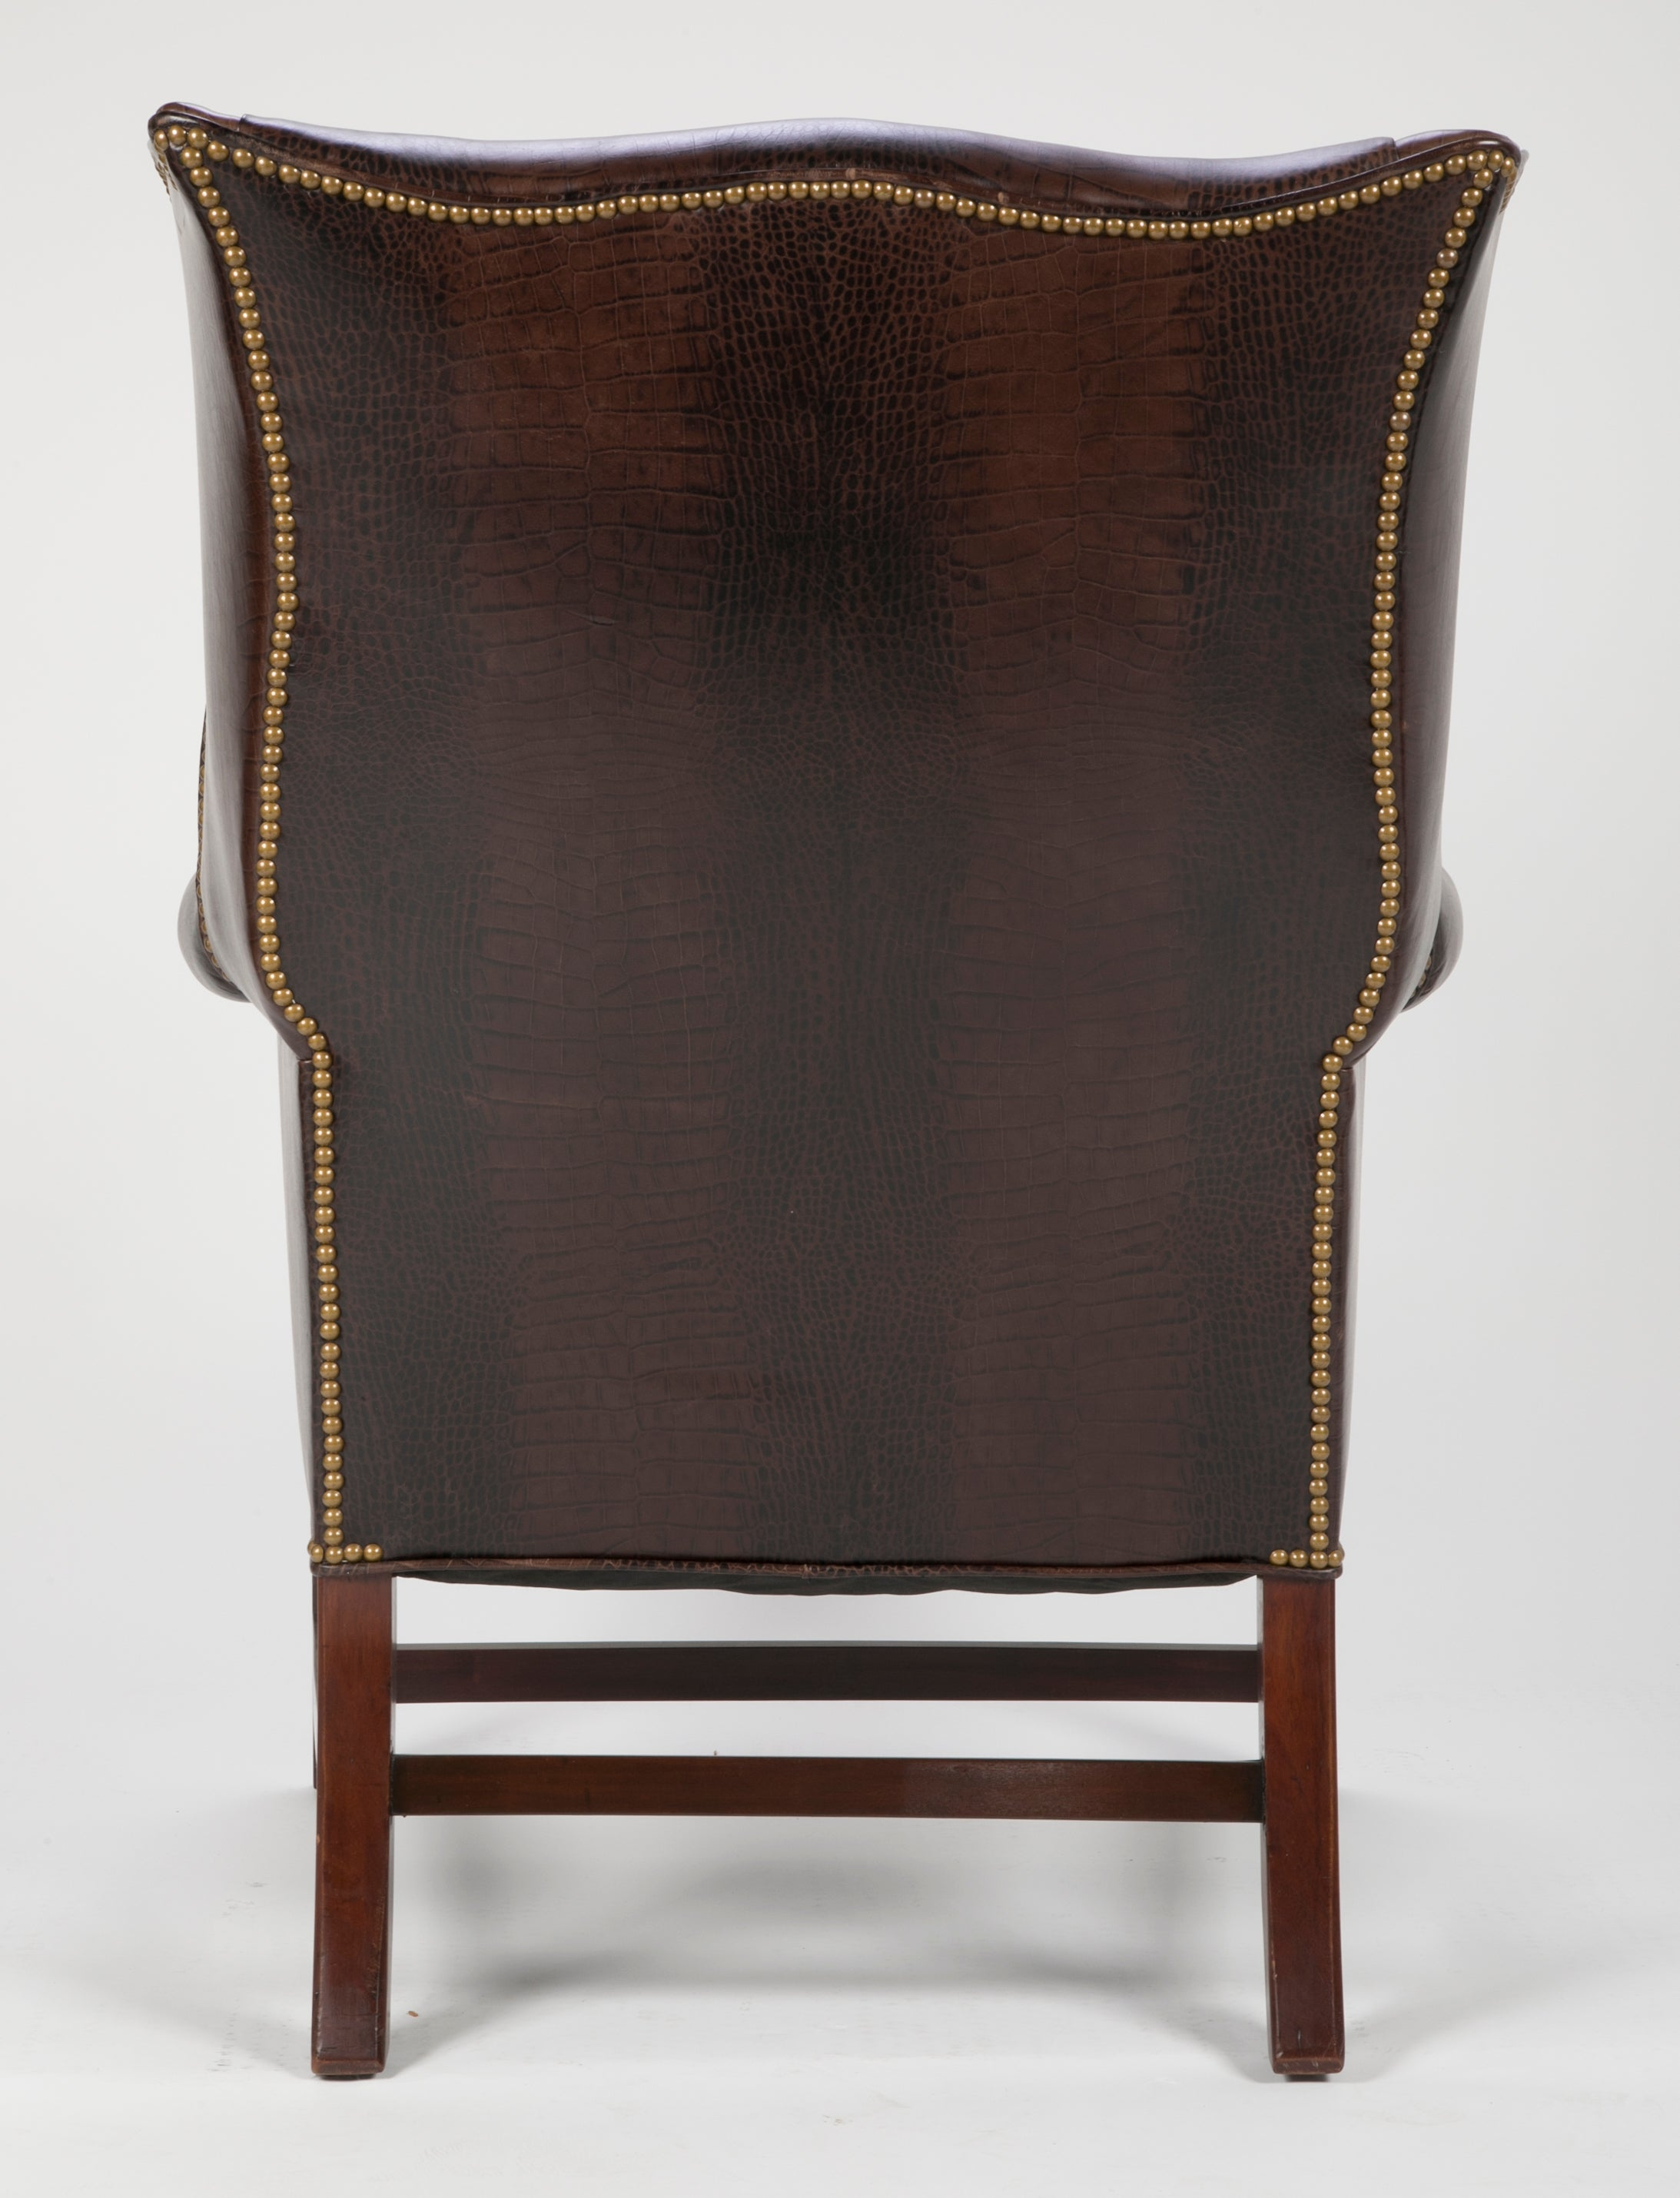 George III Mahogany Wing Chair with Leather Upholstery